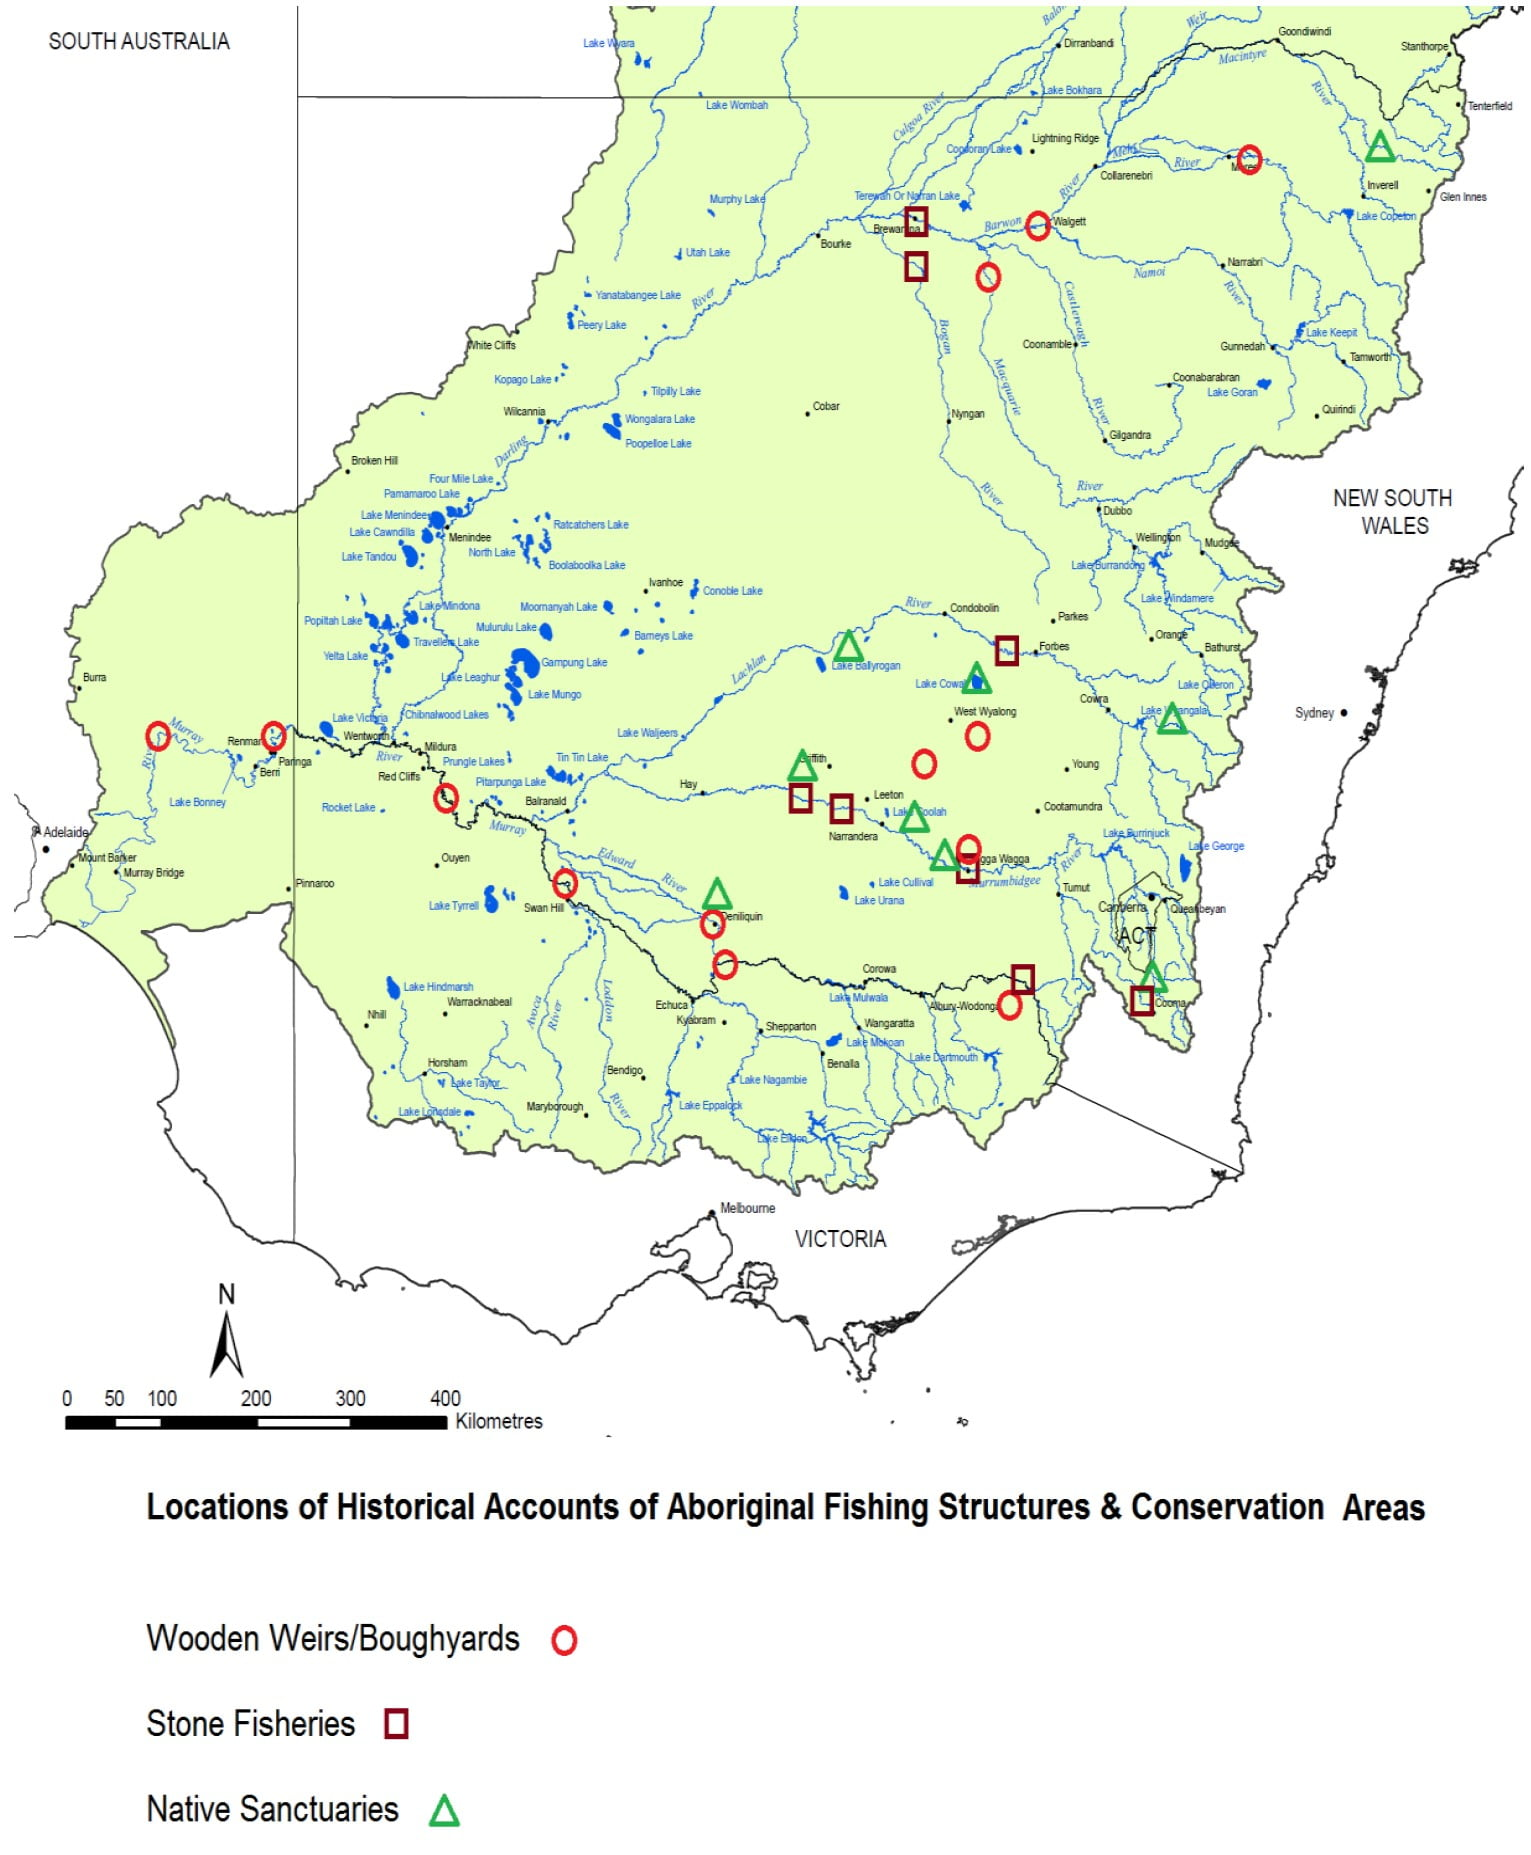 Locations of historical accounts of Aboriginal fishing structures and conservation areas